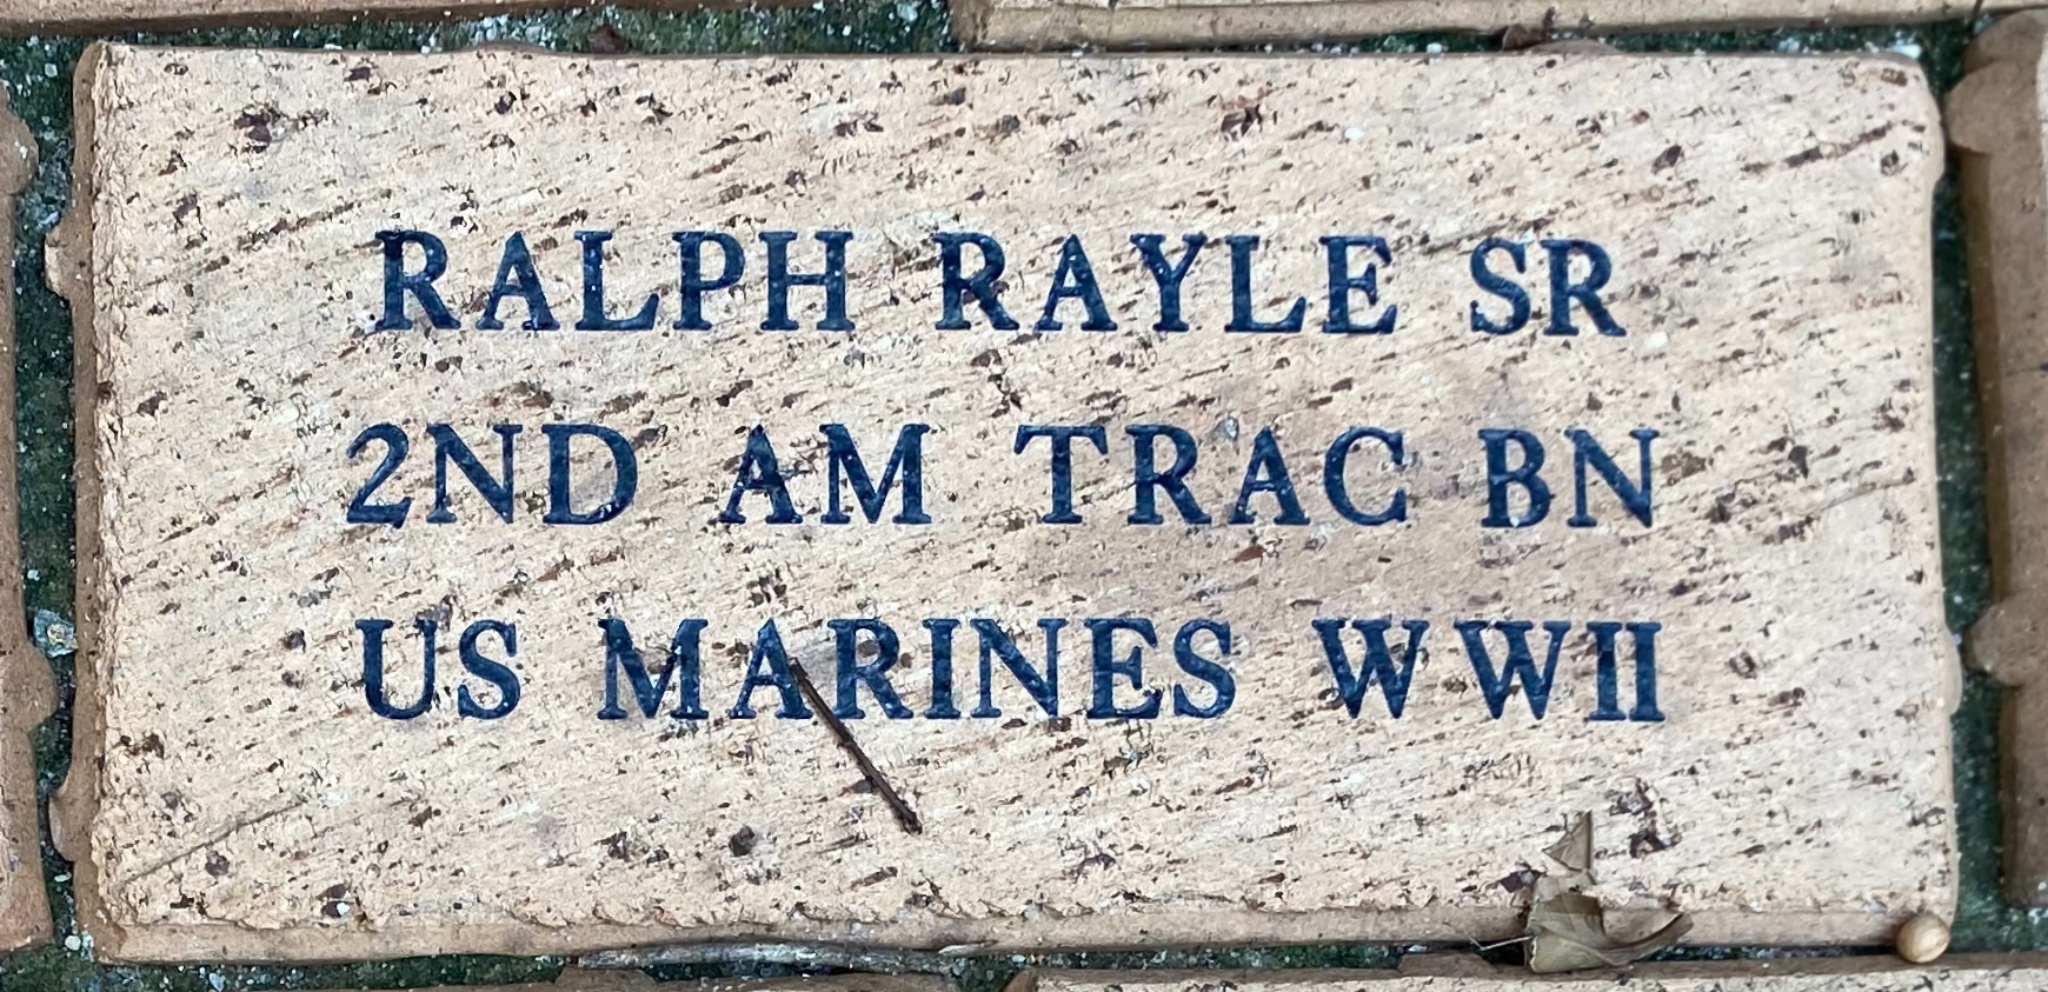 RALPH RAYLE SR 2ND AM TRAC BN US MARINES WWII